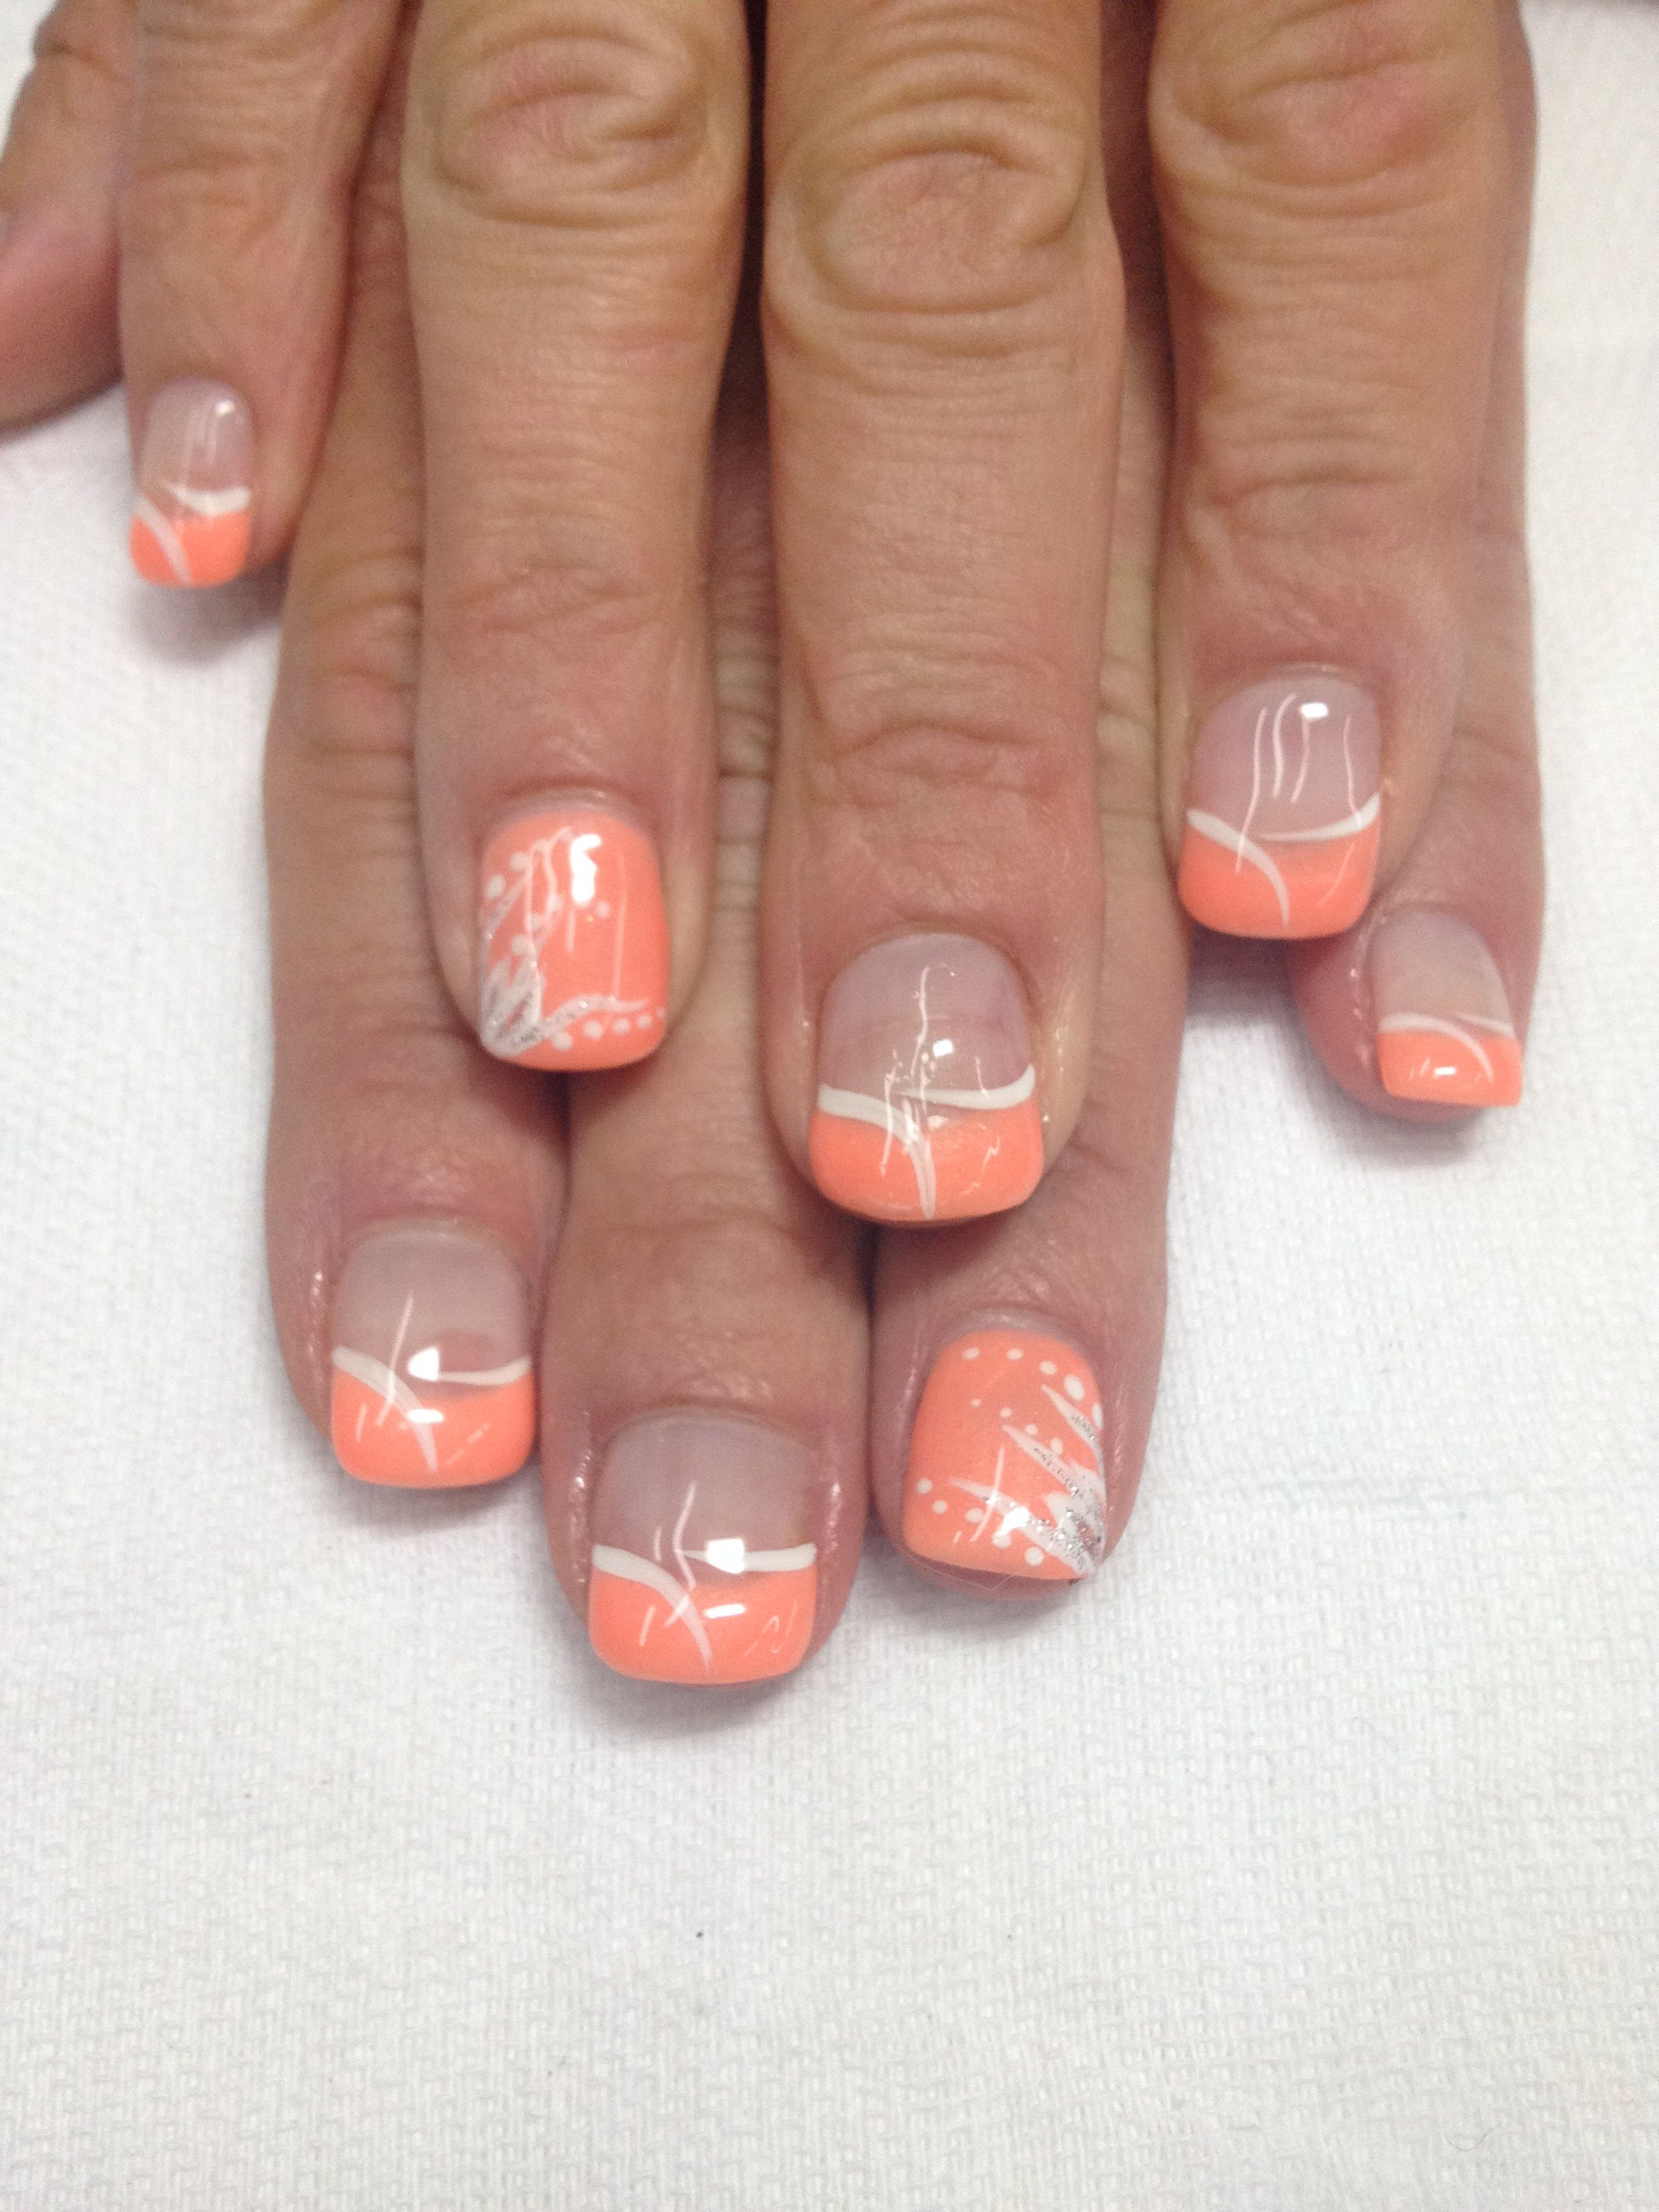 Summer Nails Creamy Orange French Gel Nails With Swish Accents